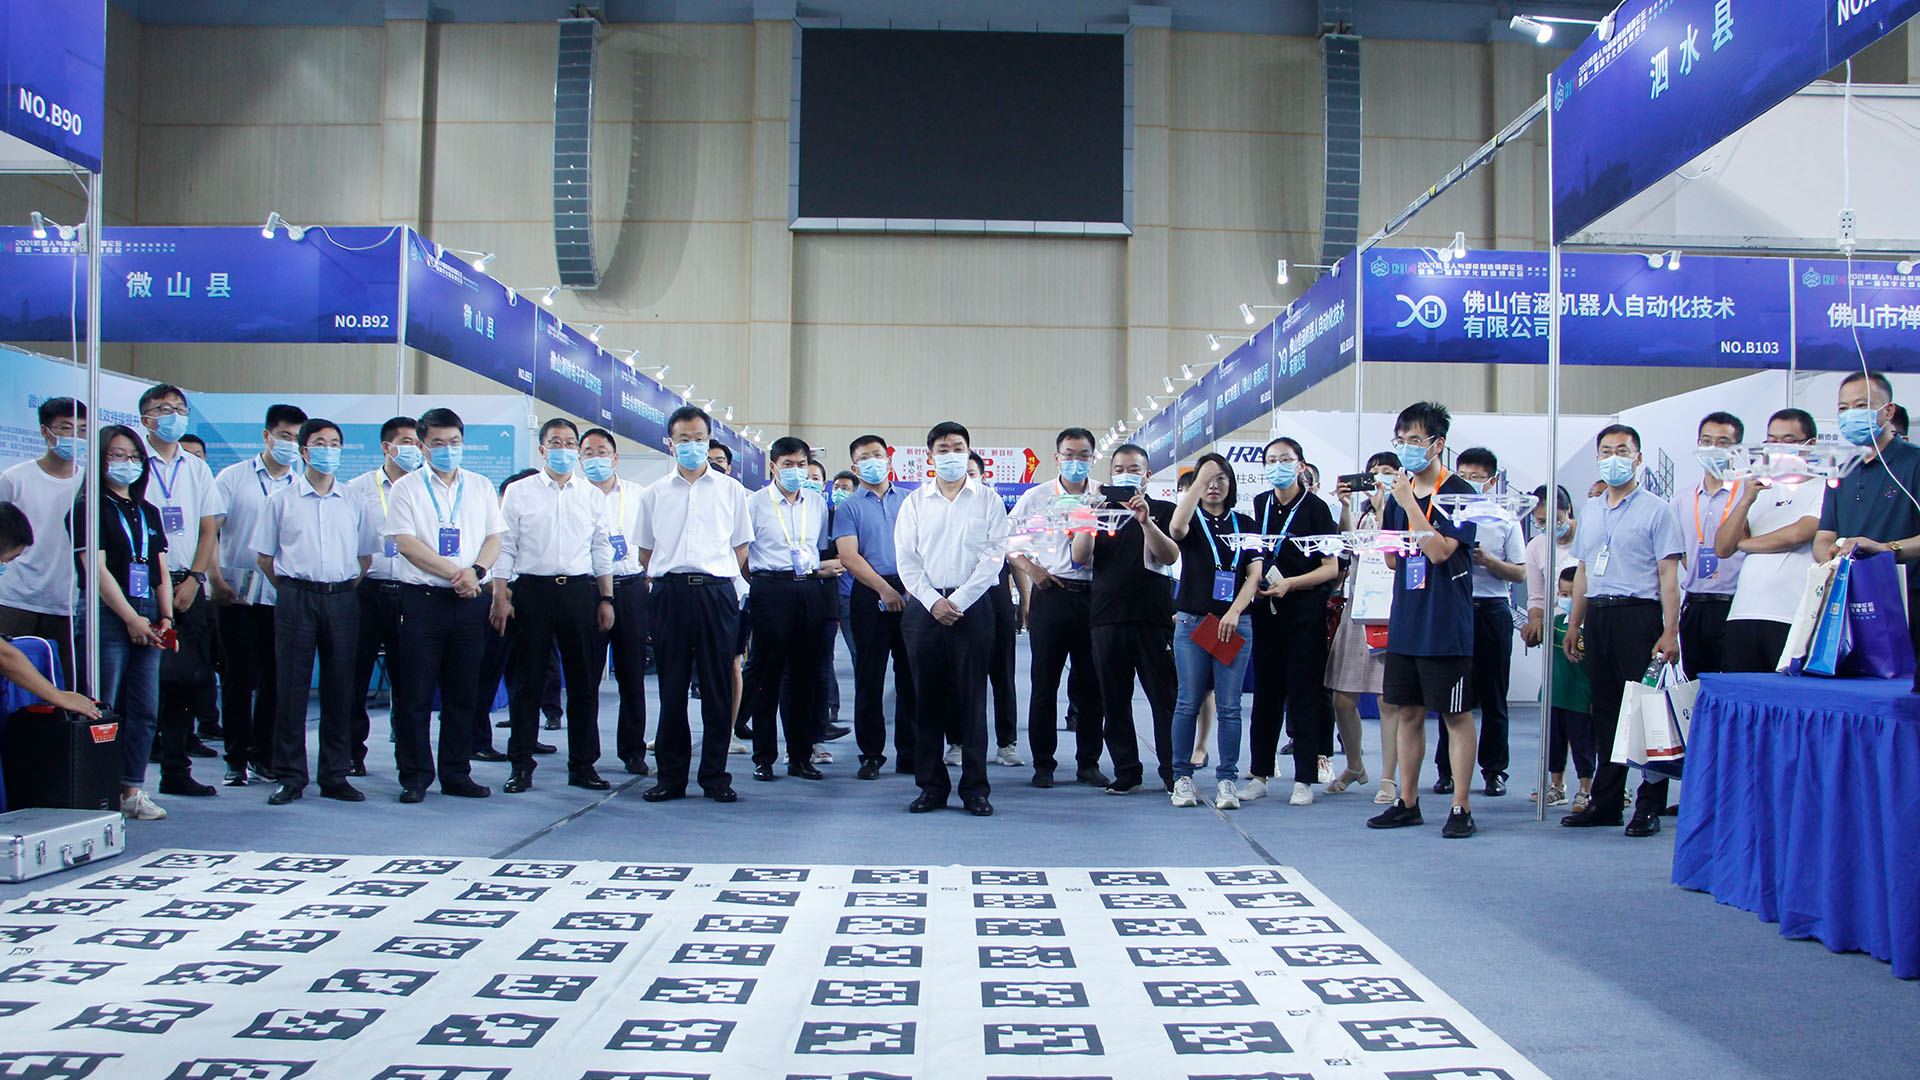 China Coal Group Carter Robot Company participated in the Robot Expo